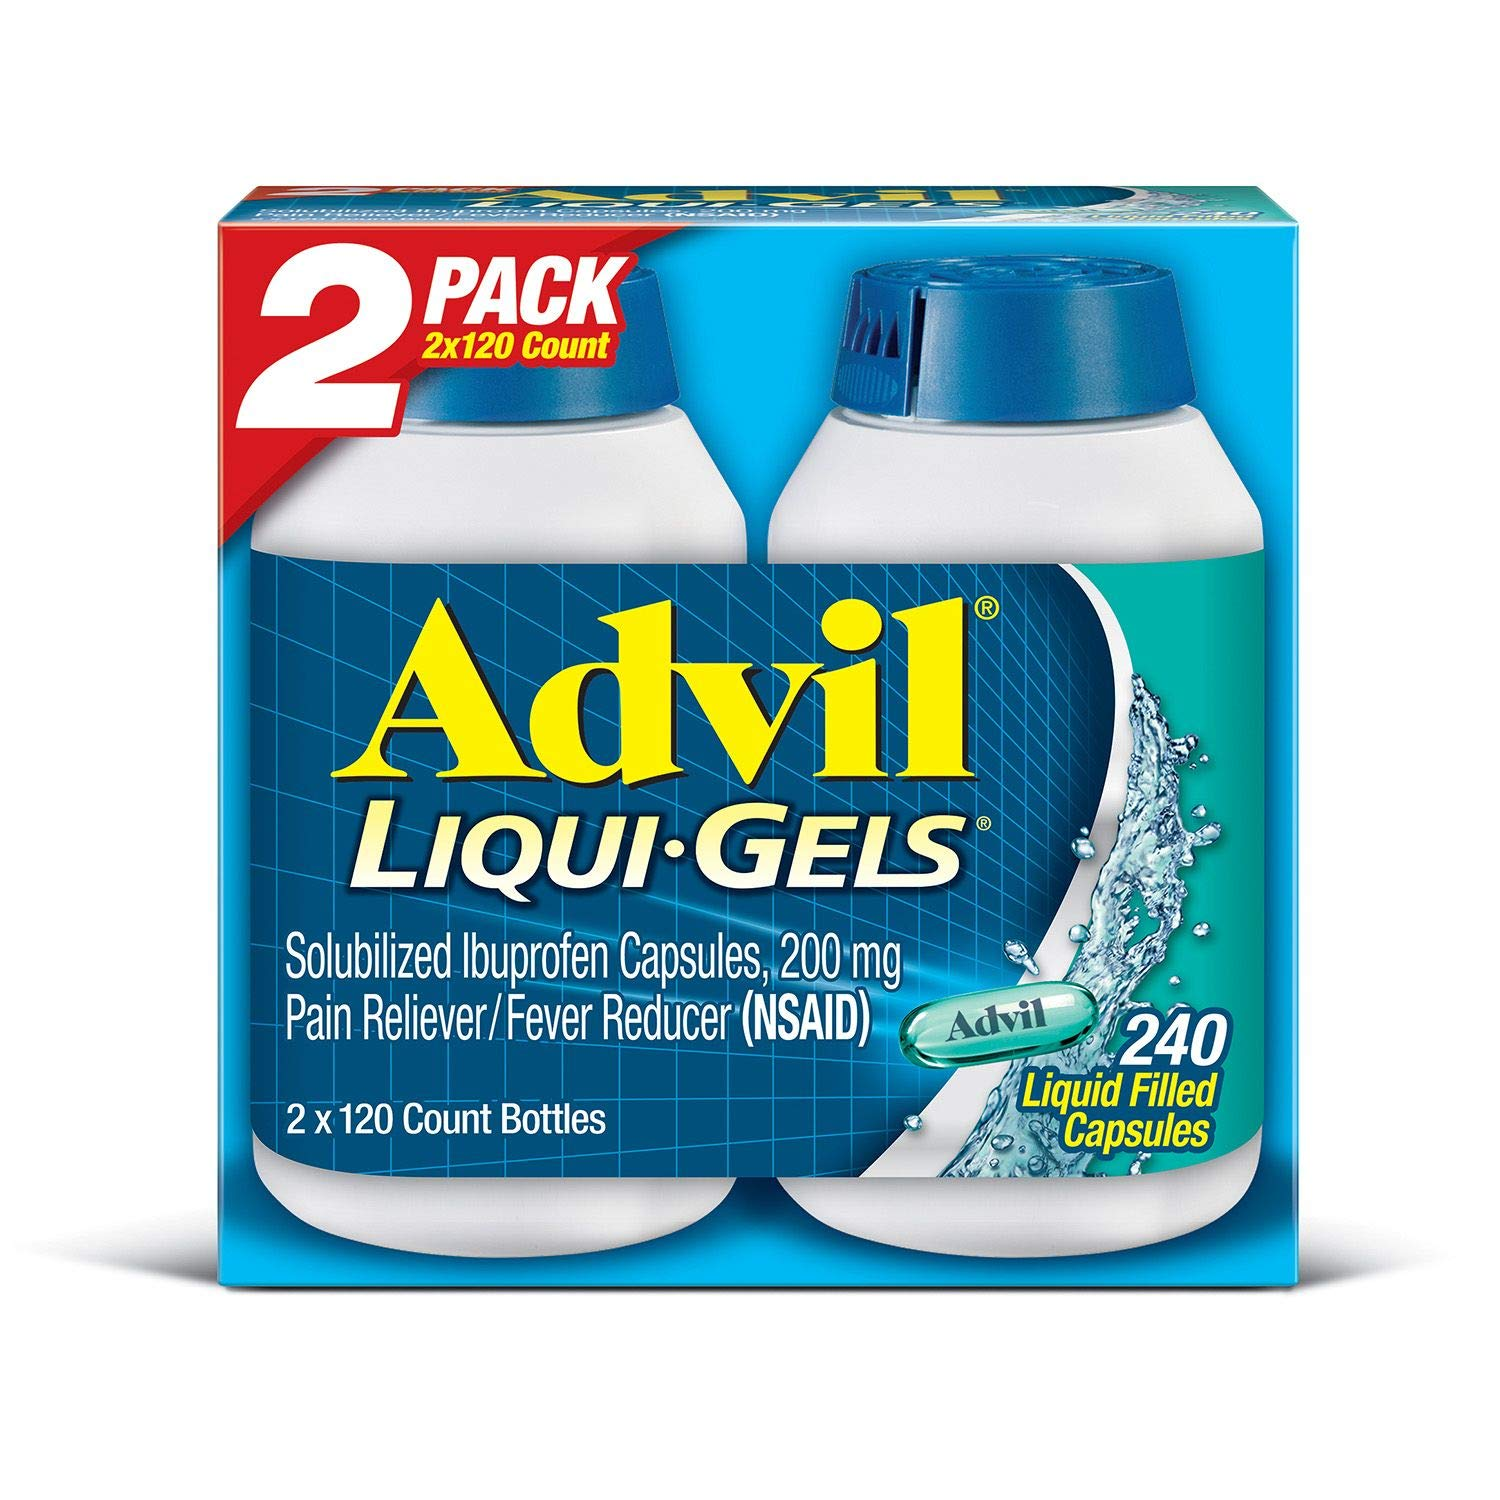 Advil Liqui-Gels (240 Count) Pain Reliever/Fever Reducer Liquid Filled Capsule, 200mg Ibuprofen, 240 Count        by Advil